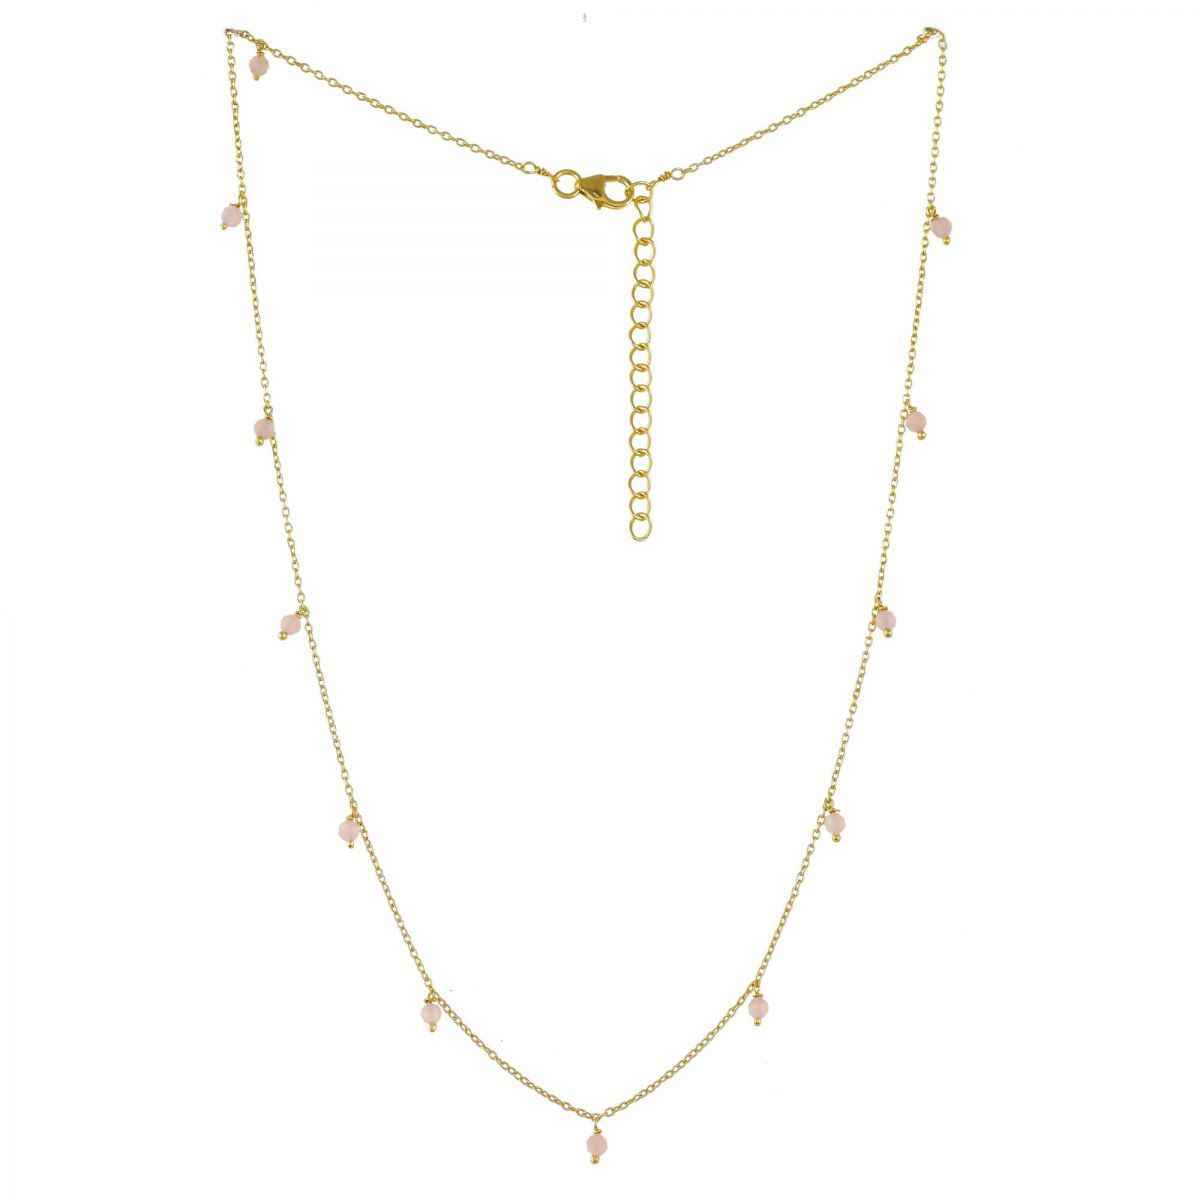 jcollier 3mm peach moonstone beads 45cm gold plated